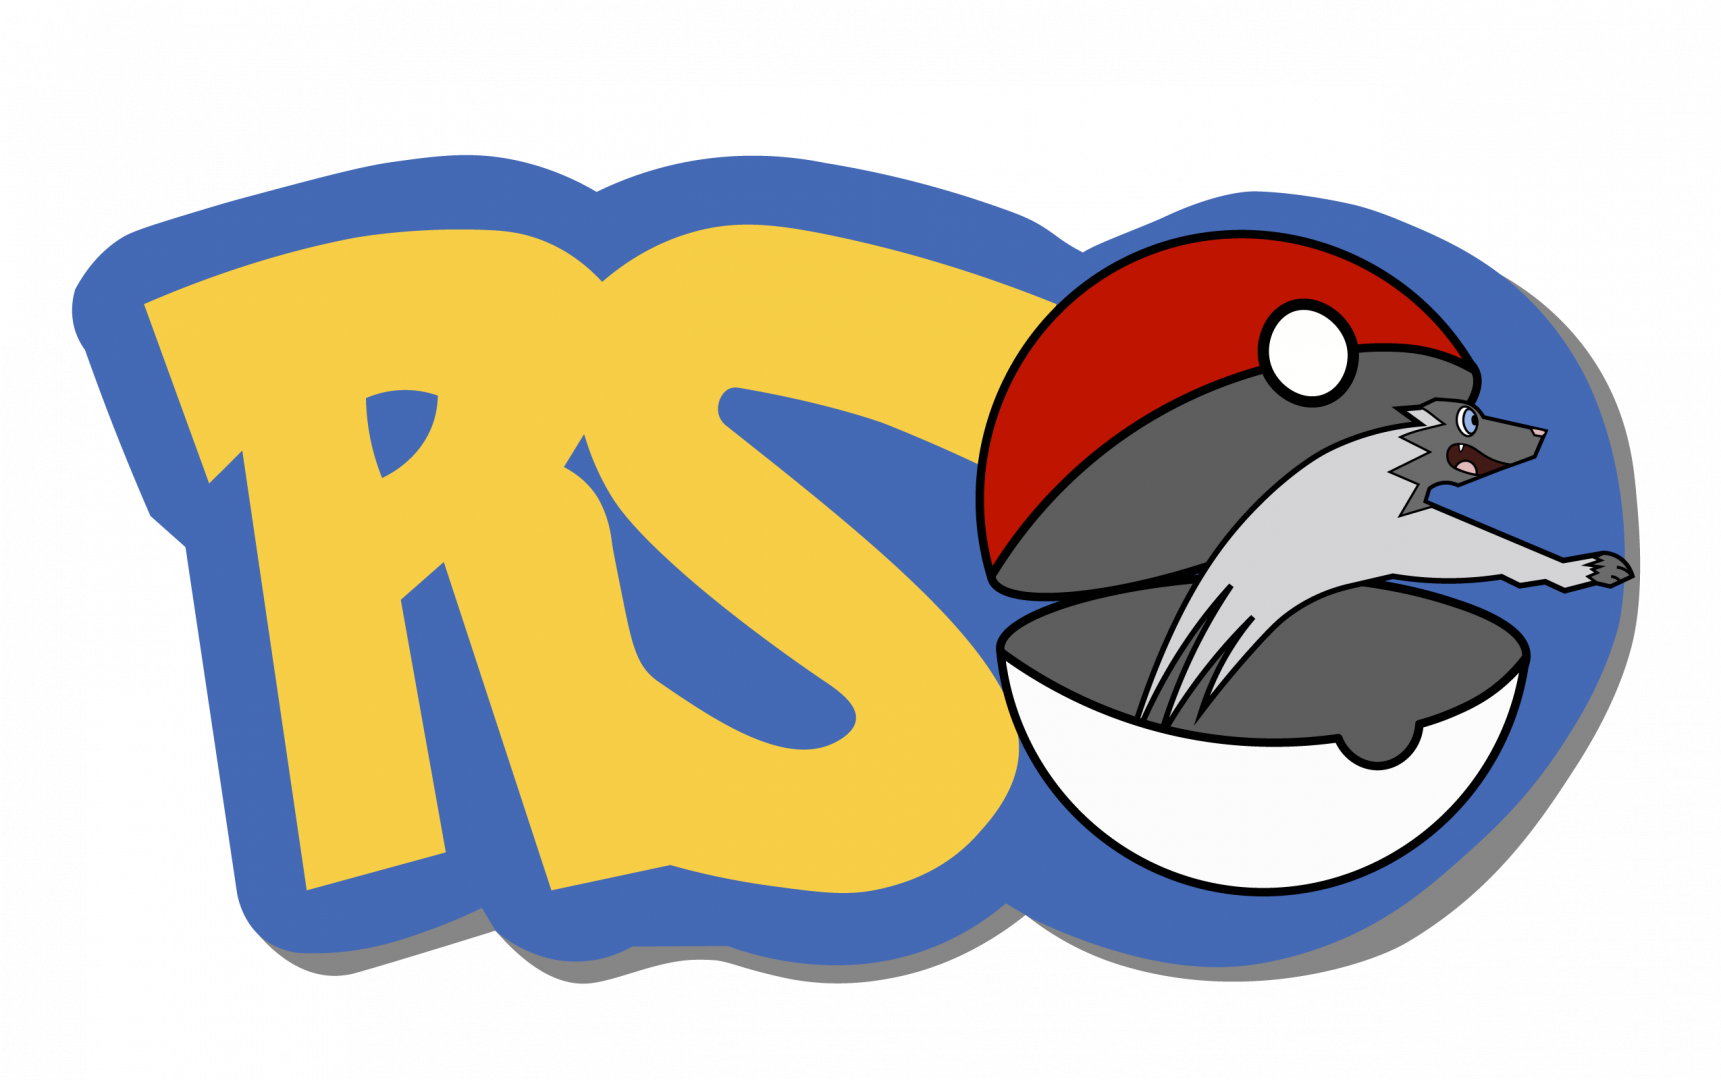 RSO Pokemon Go Graphic